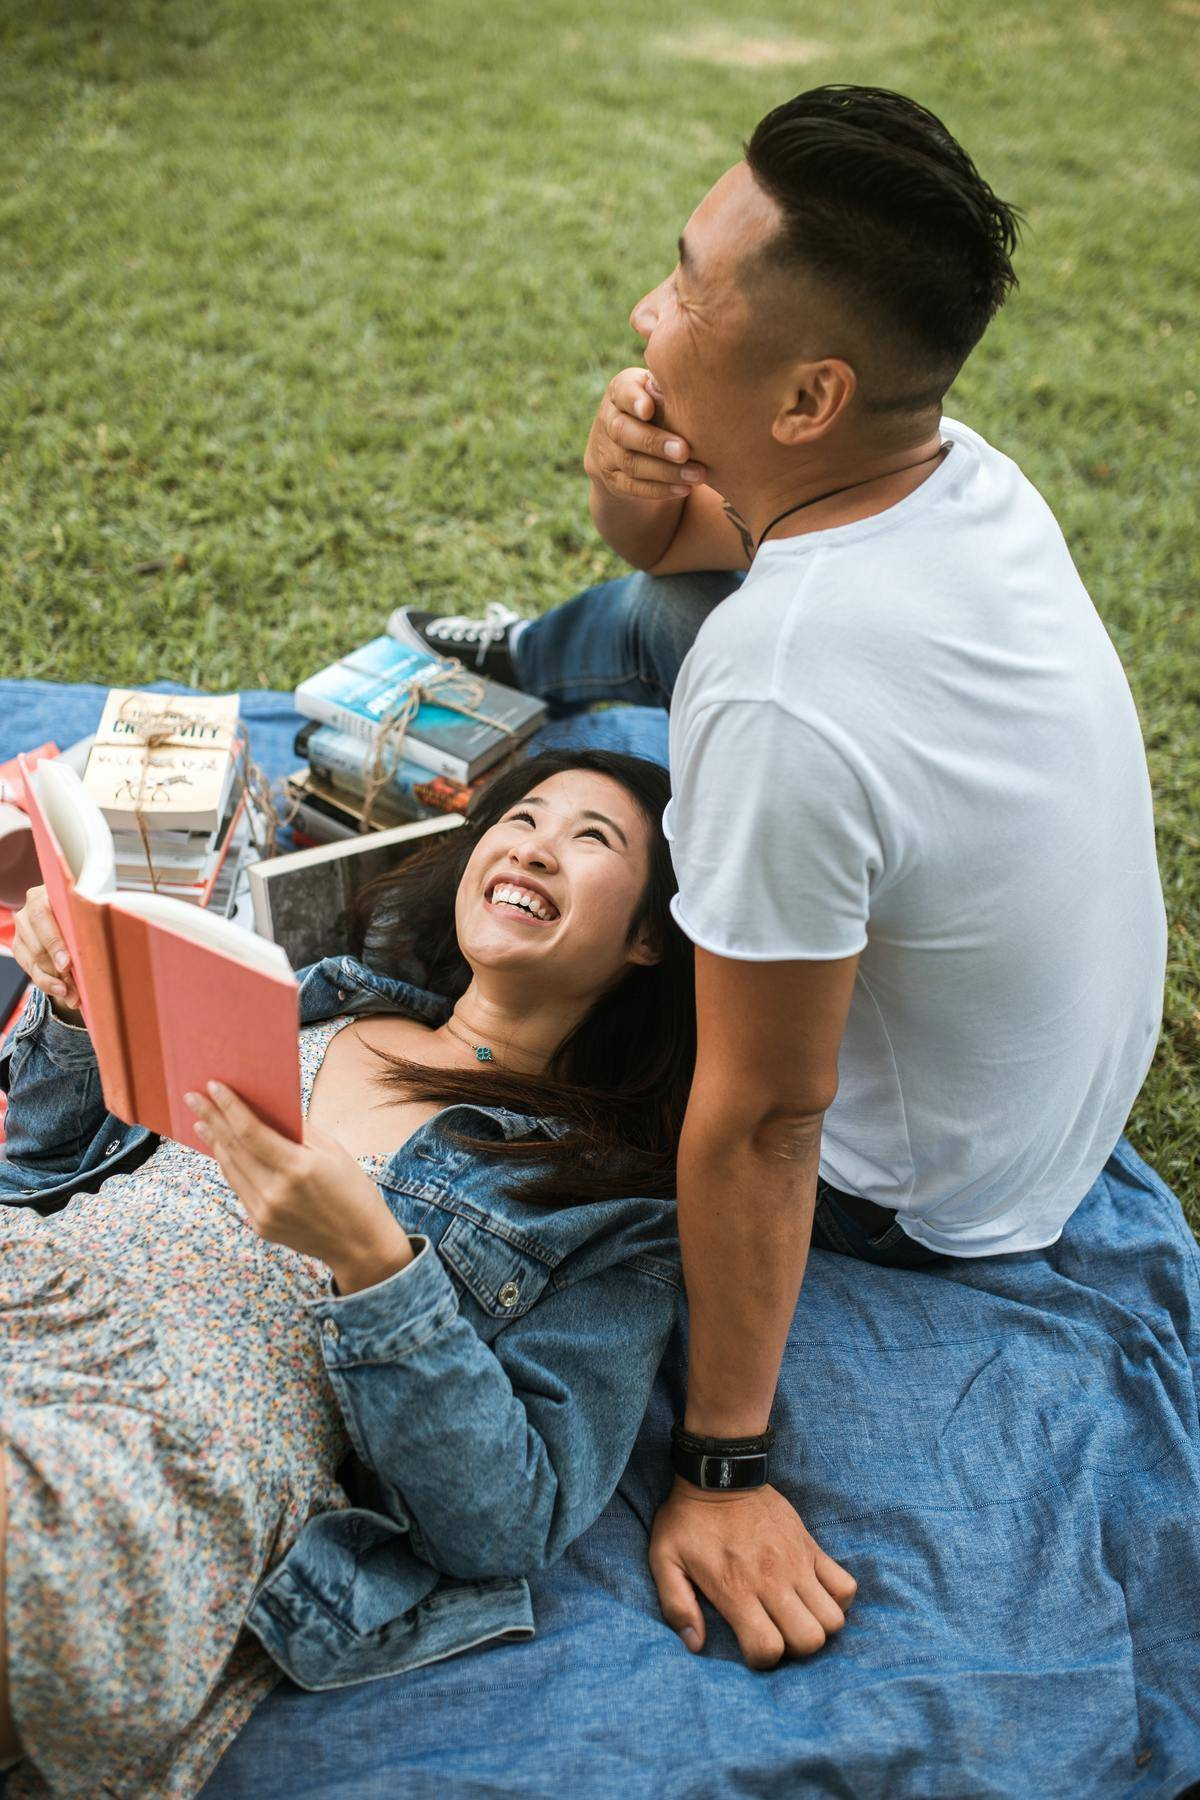 couple on a blanket on grass reading